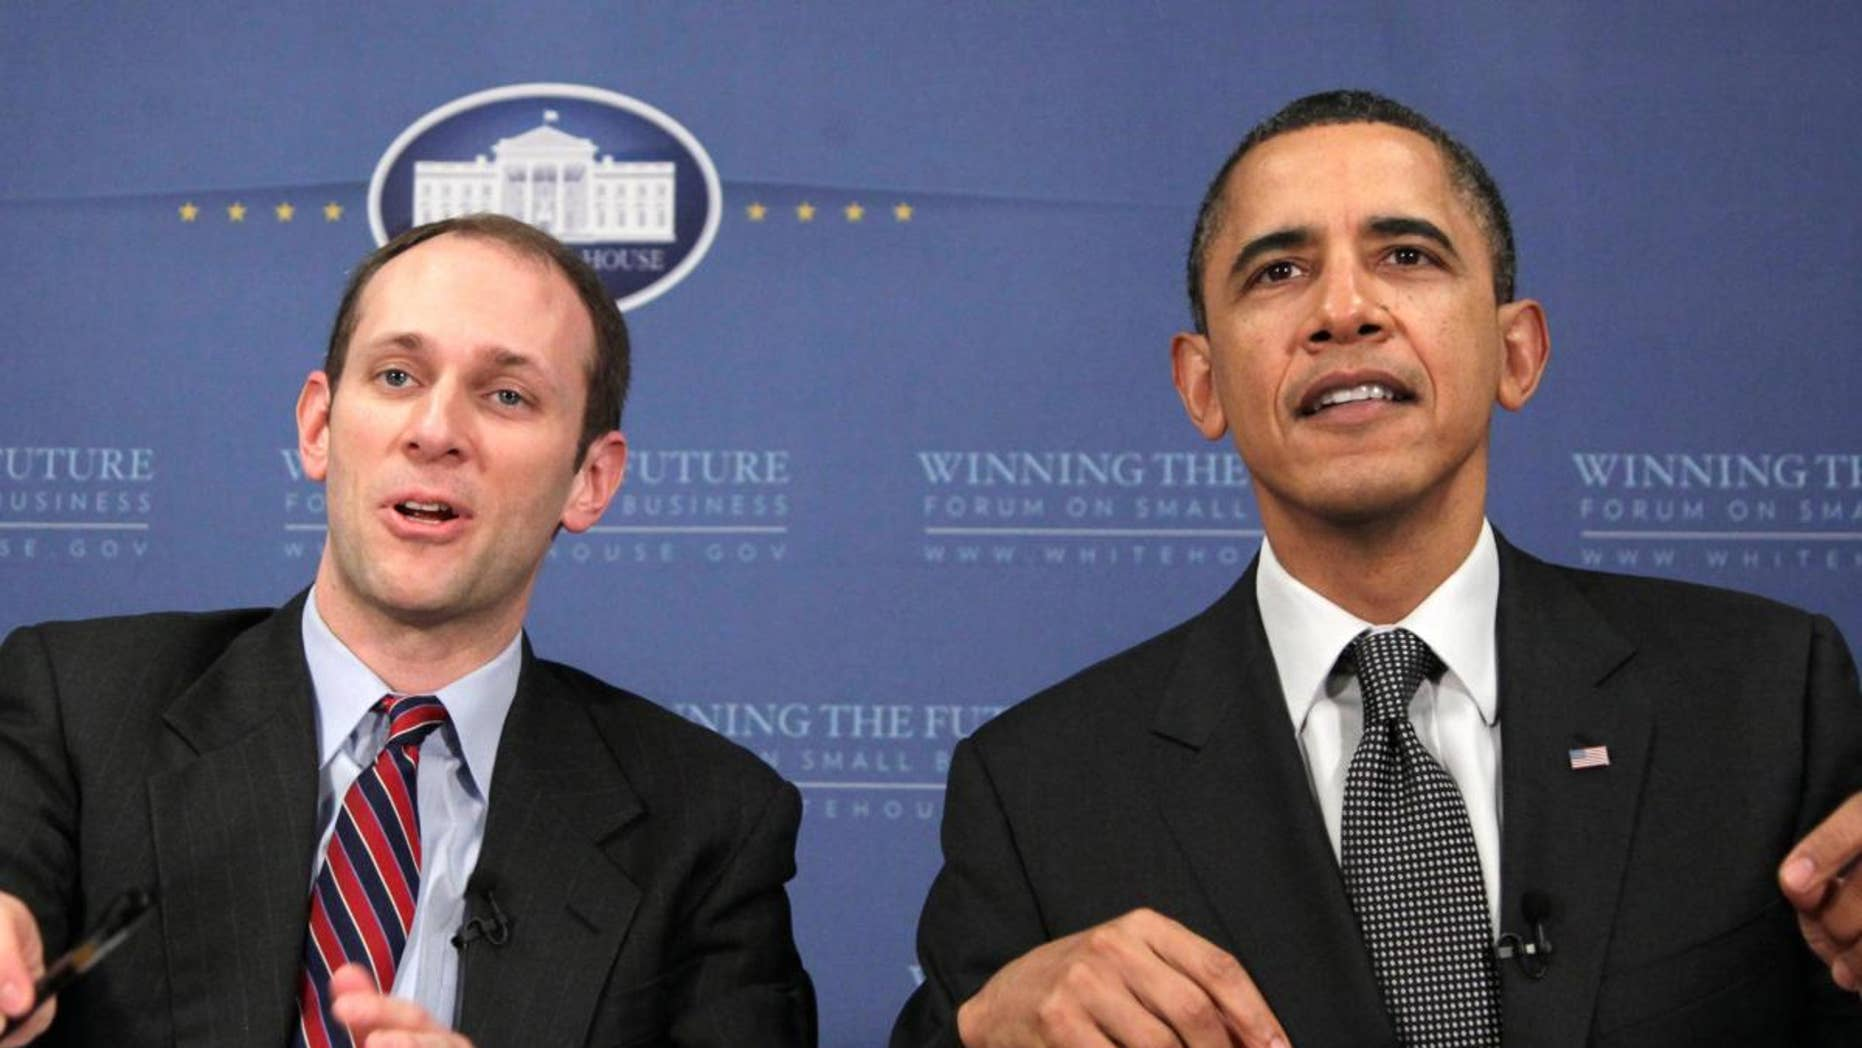 President Barack Obama and Council of Economic Advisers Chairman Austan Goolsbee, participate in an online chat session during the Winning the Future Forum on Small Business at Cleveland State University in Cleveland, Tuesday, Feb. 22, 2011. (AP Photo/Carolyn Kaster)